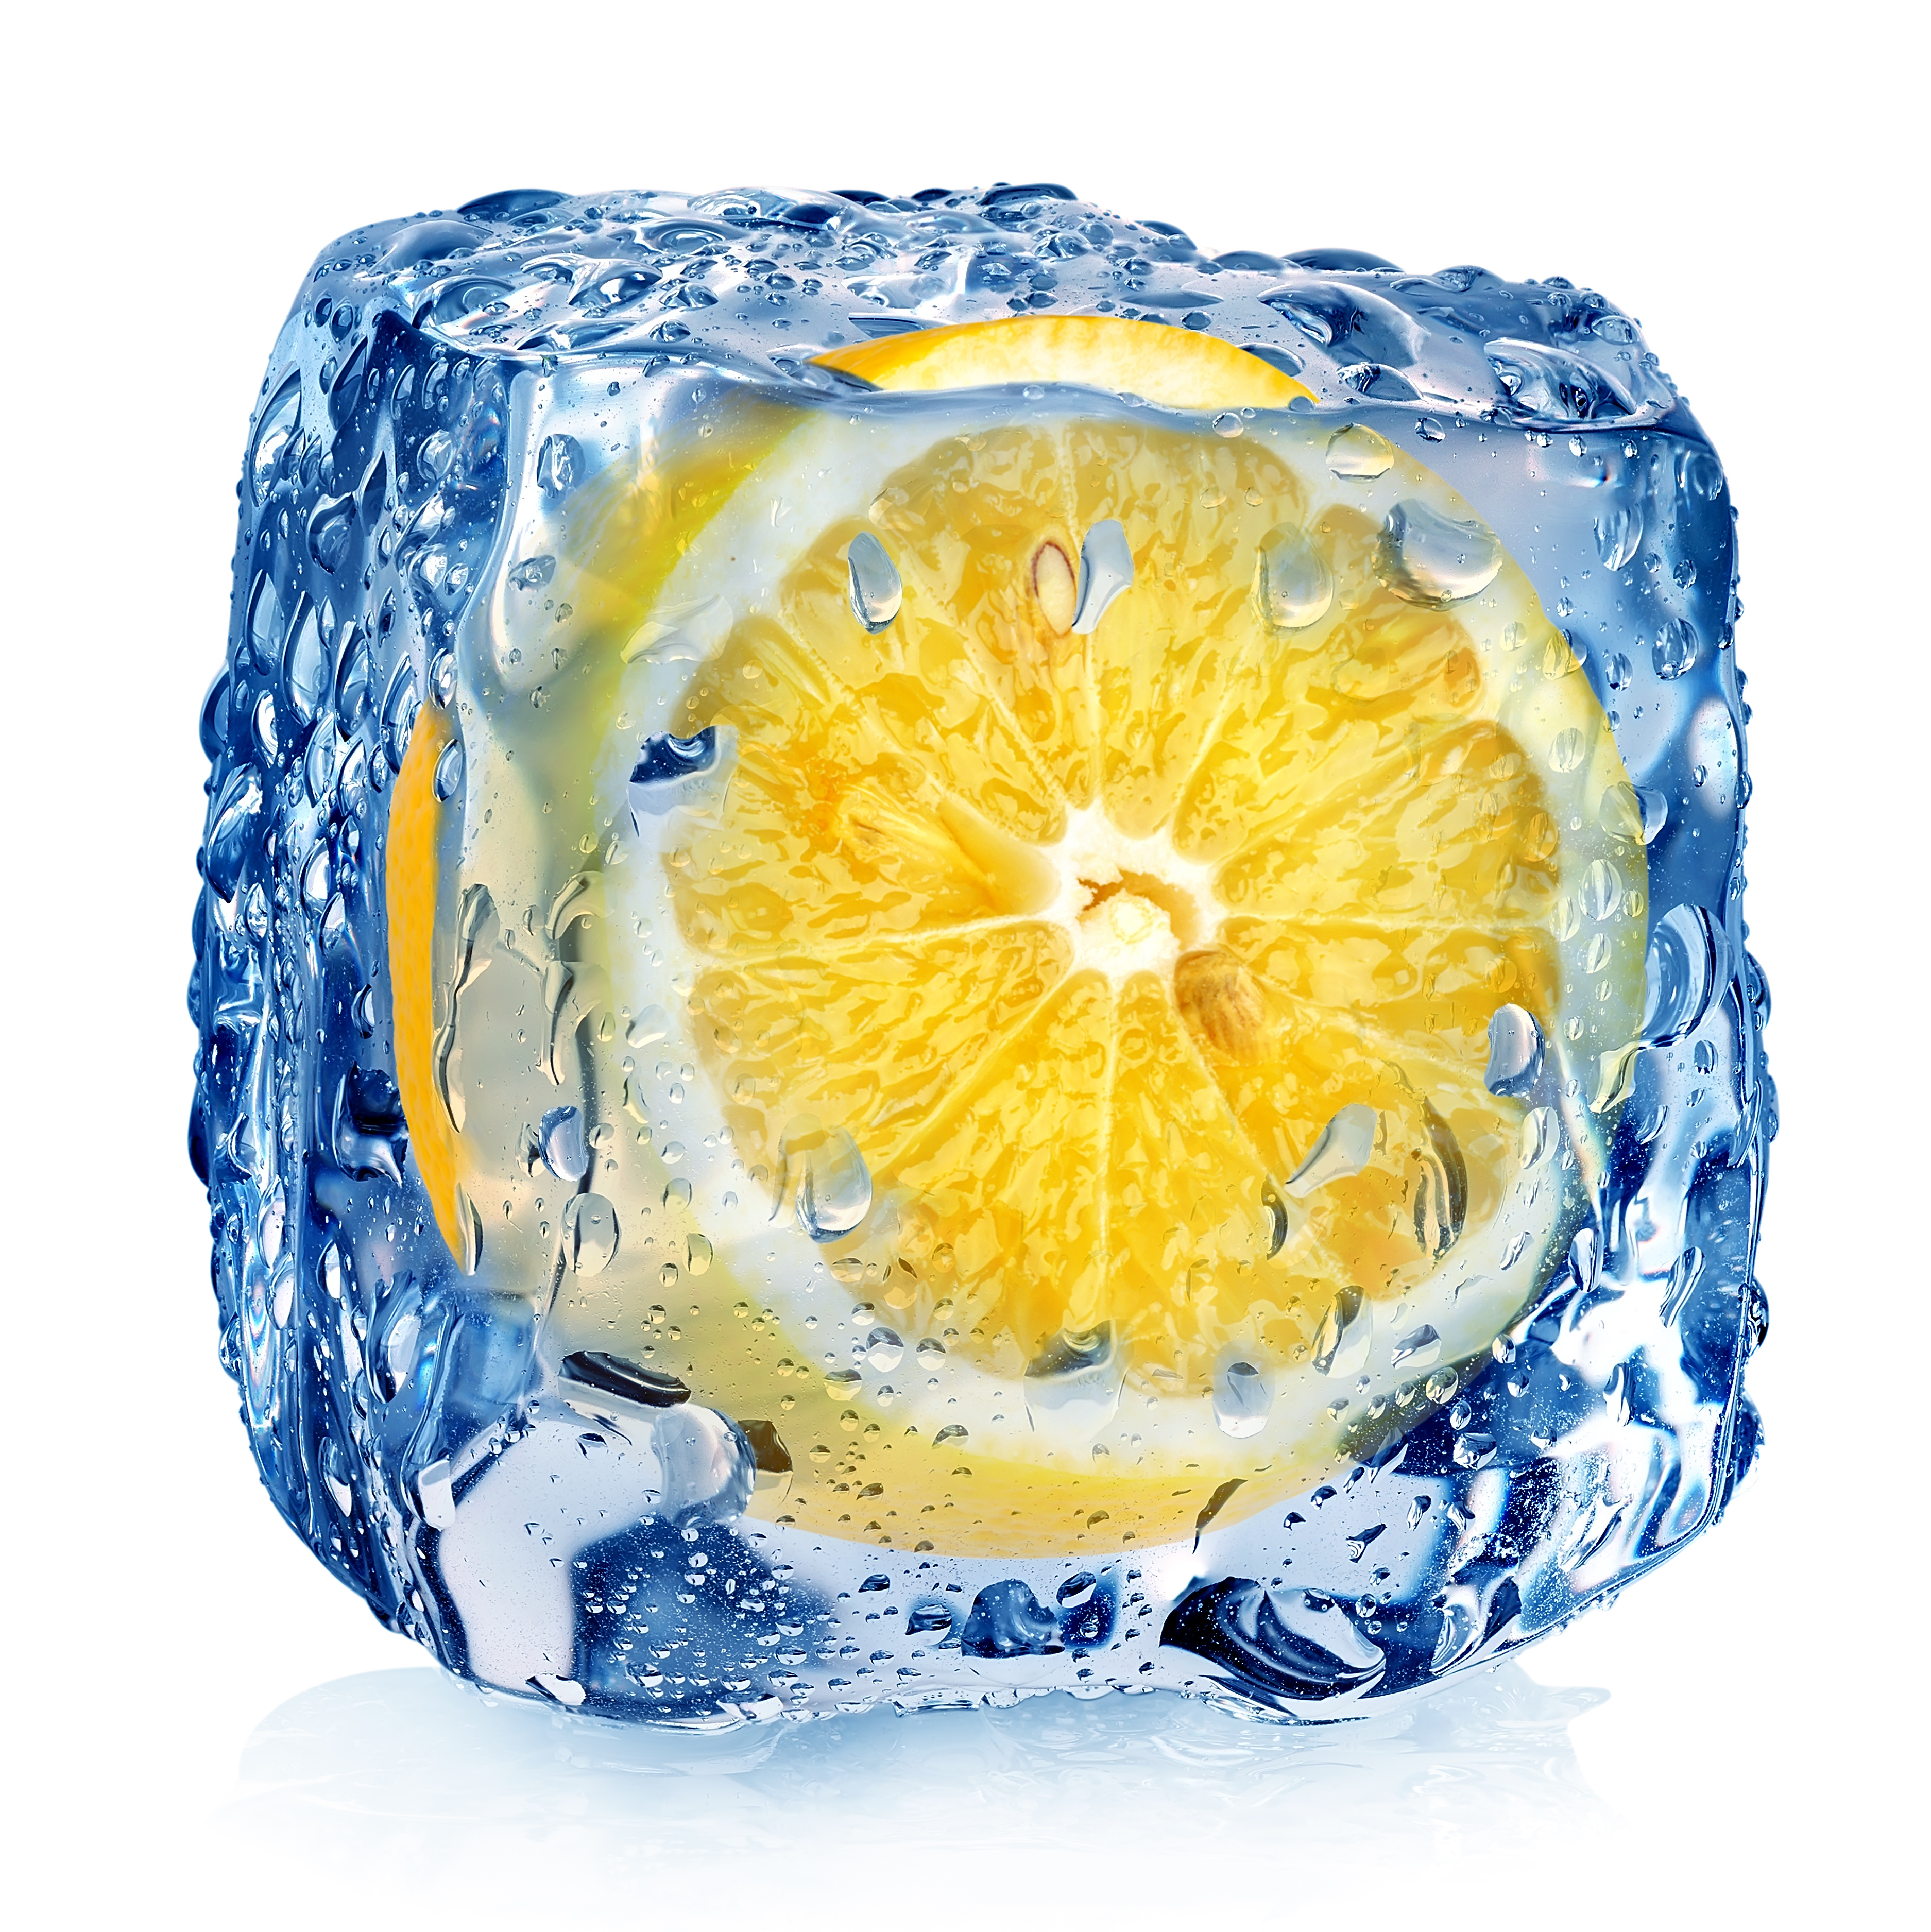 Freezing Lemons - Who Knew? - Elemental Research, Inc